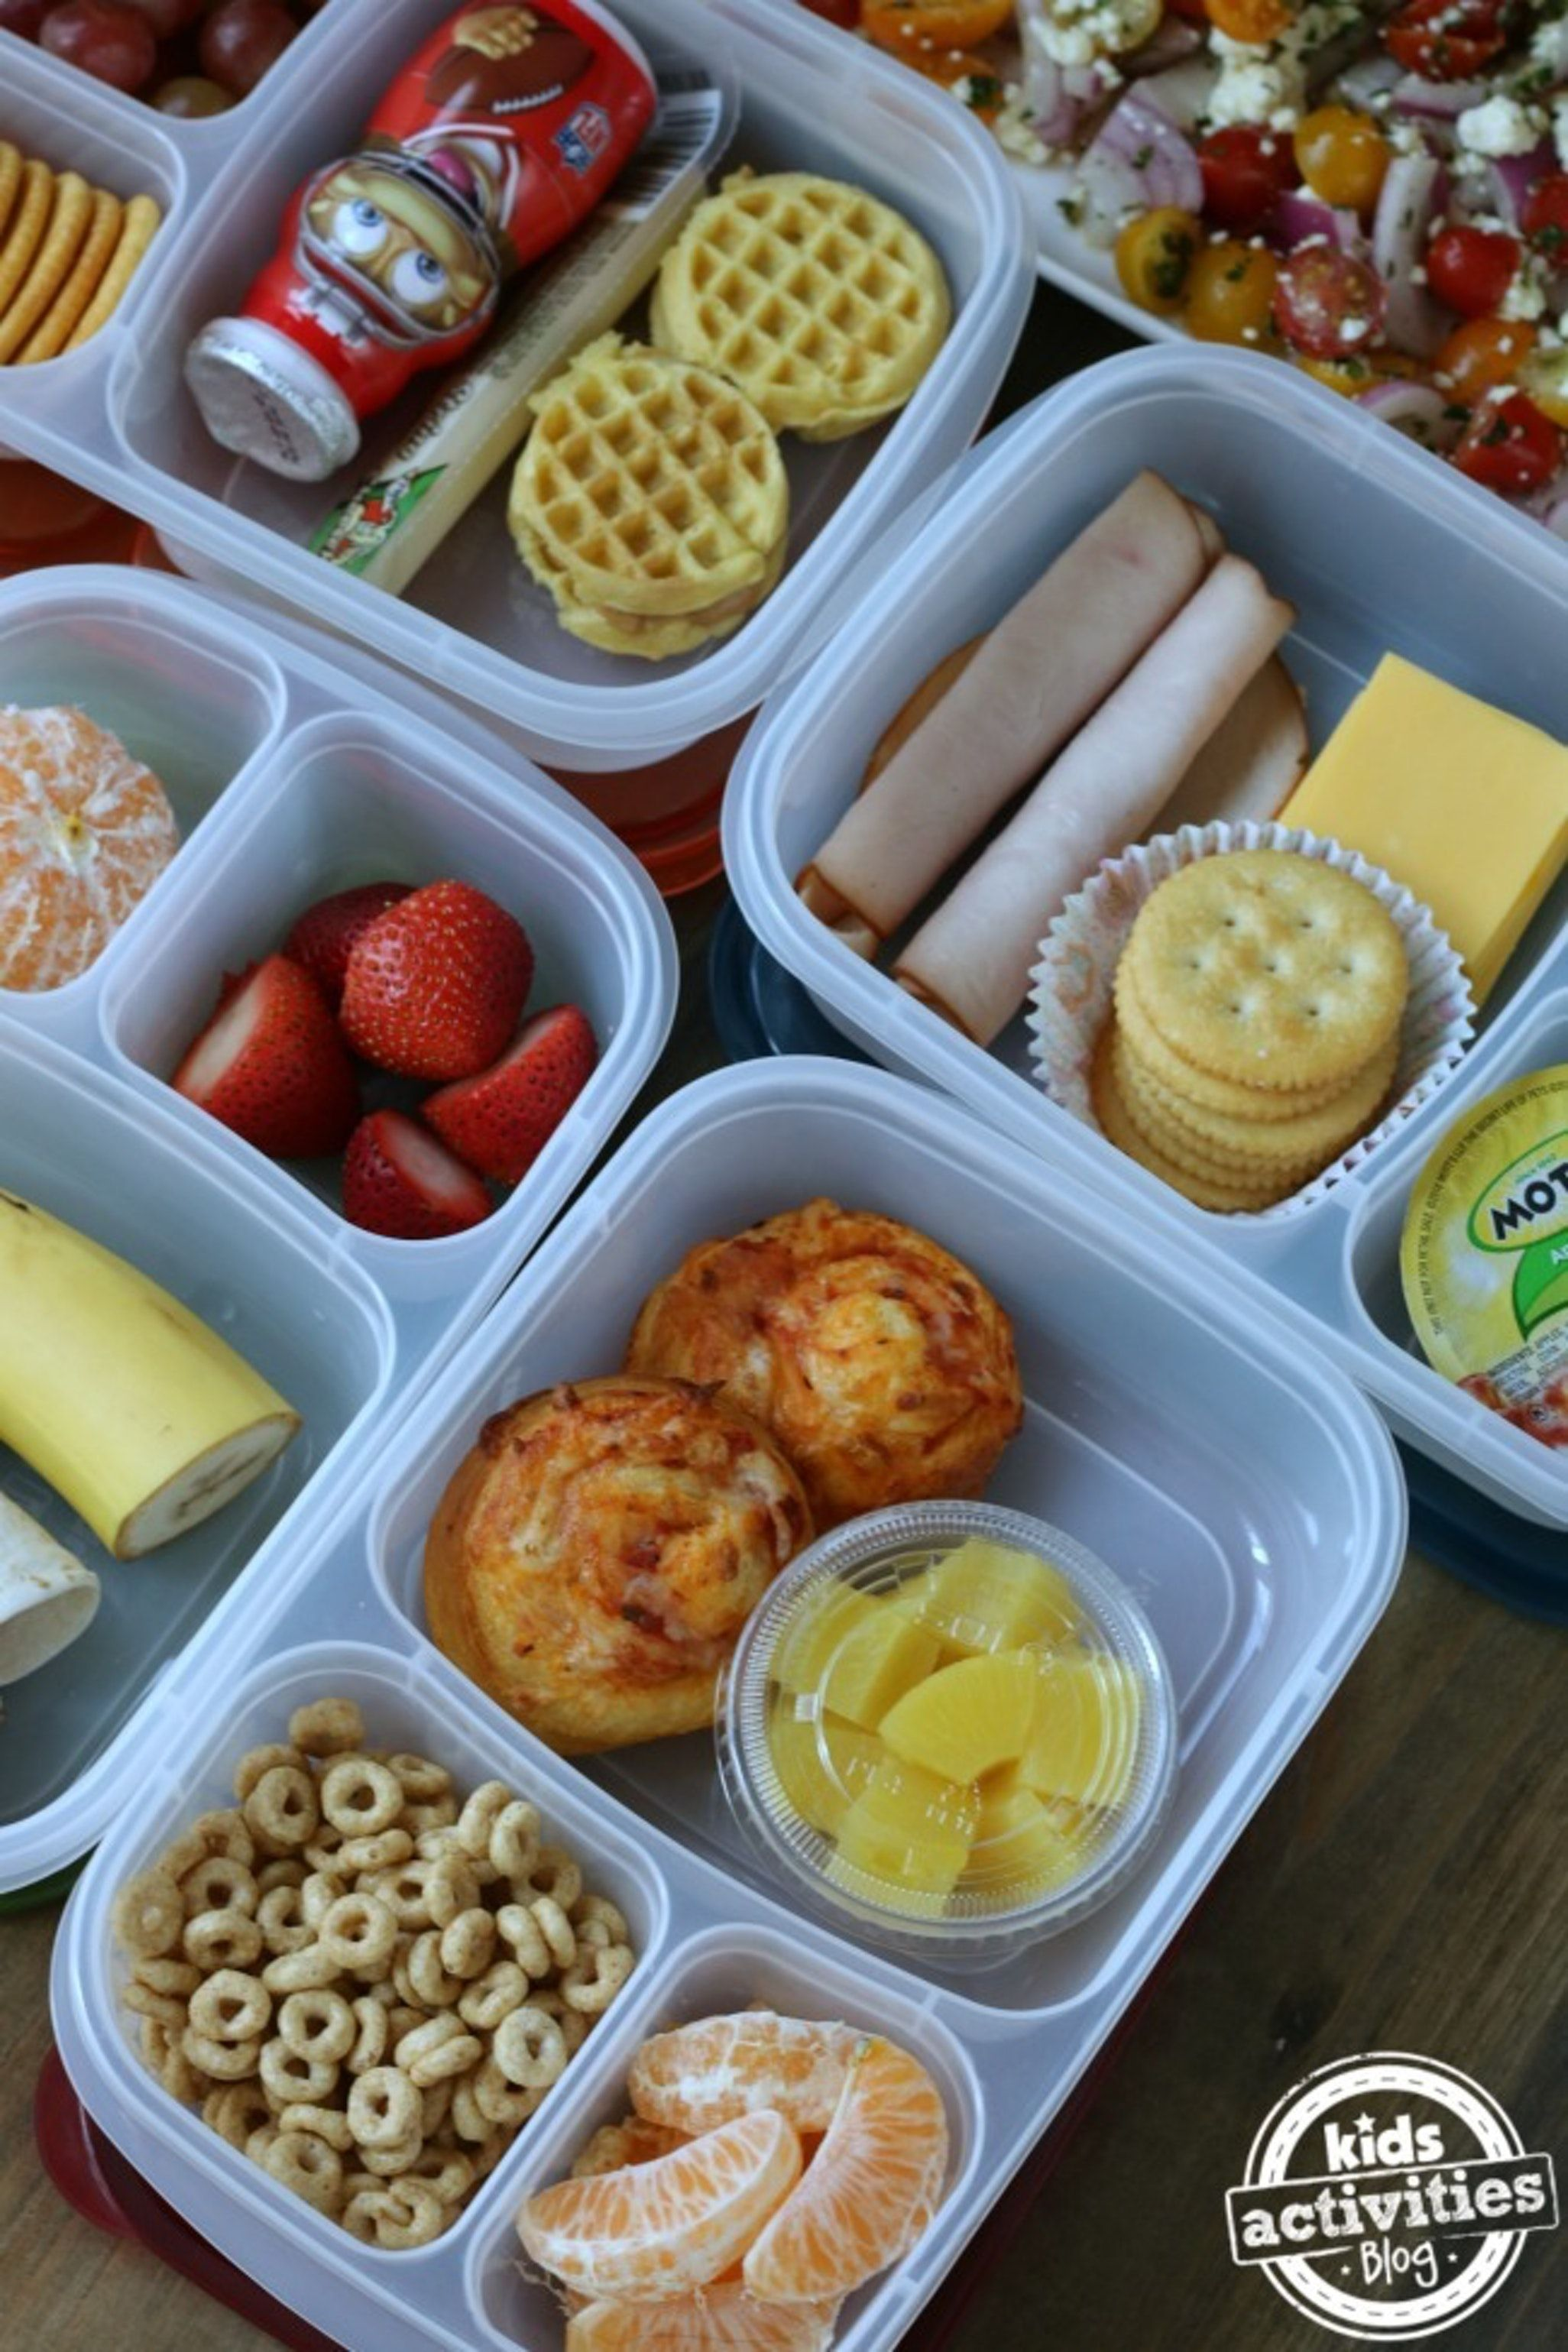 5 back to school lunch ideas for picky eaters - kids activities